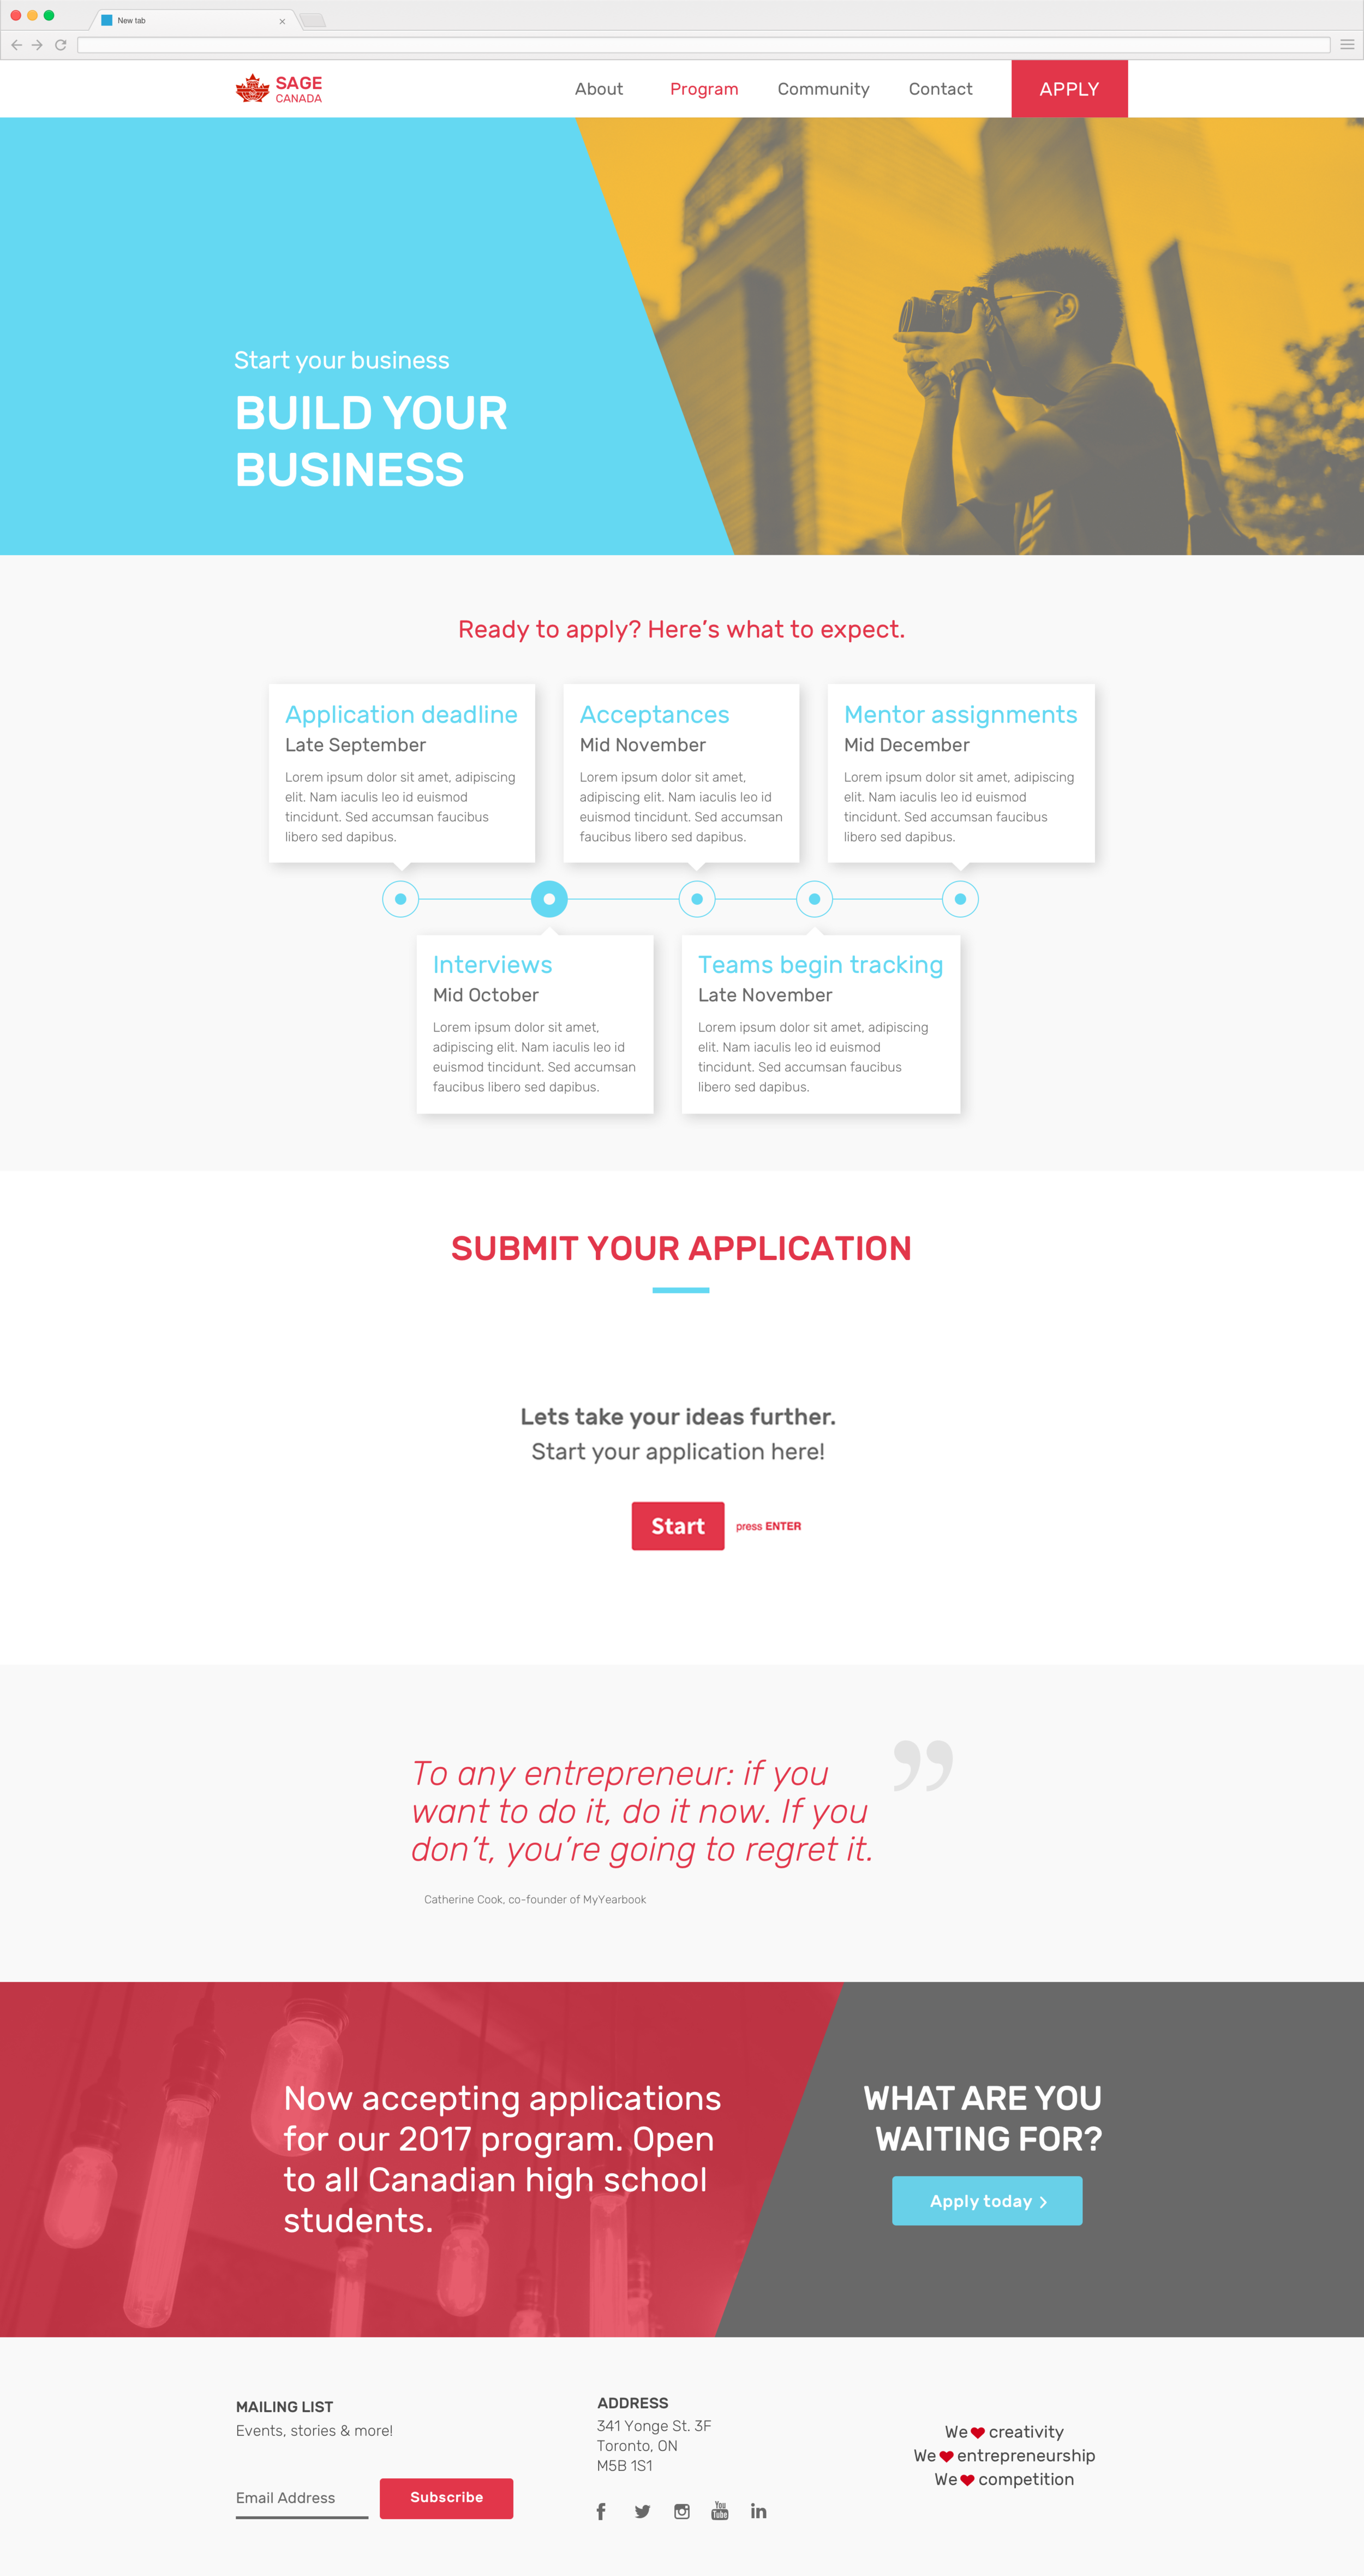 Embedded Typeform application process for easy onboarding.